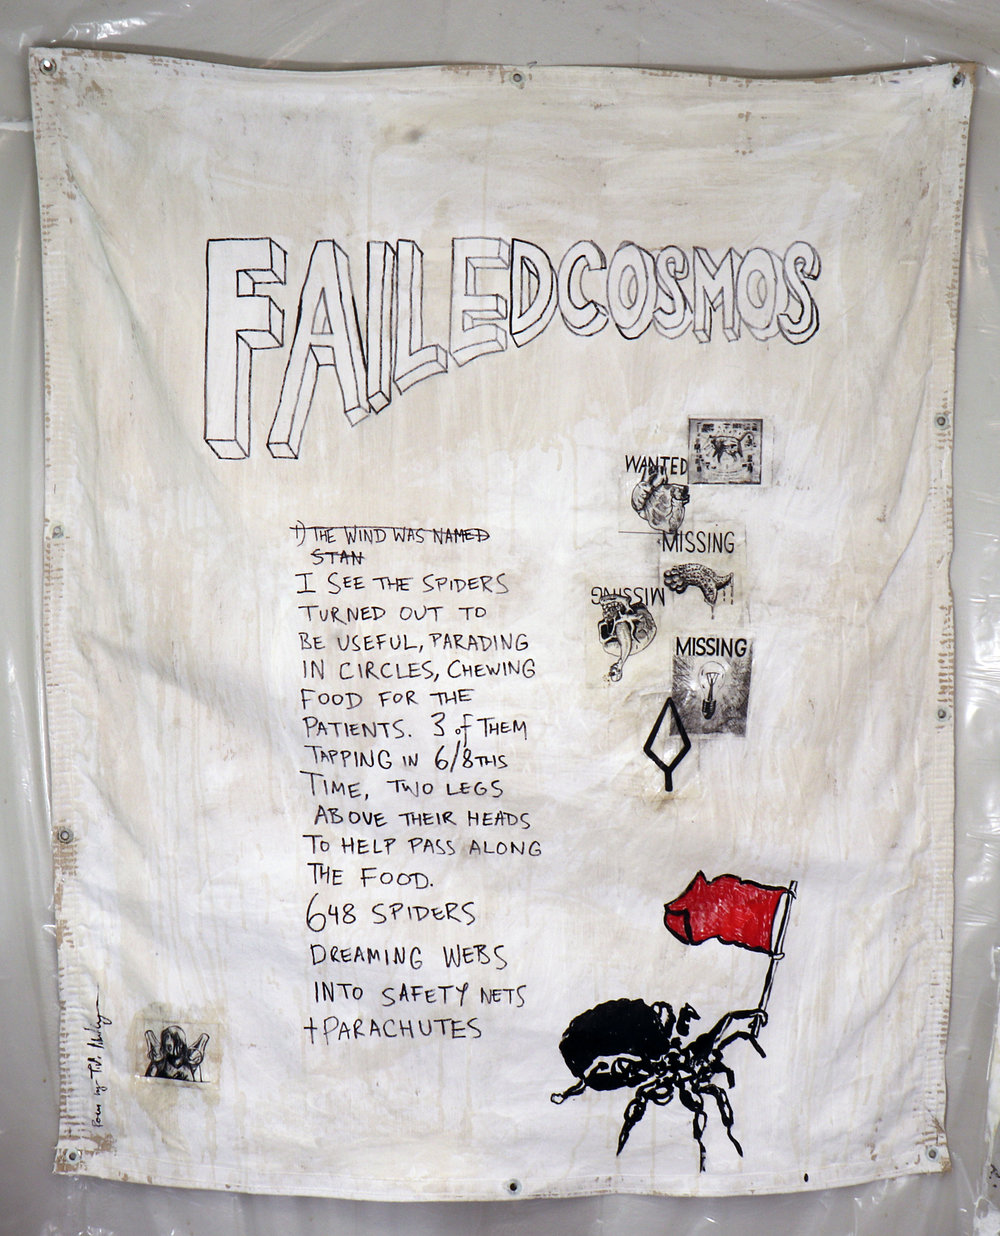 Failed Cosmos     Acrylic, ink, stickers and coffee on canvas tarp. Based on a poem by Tish Markely (2018).